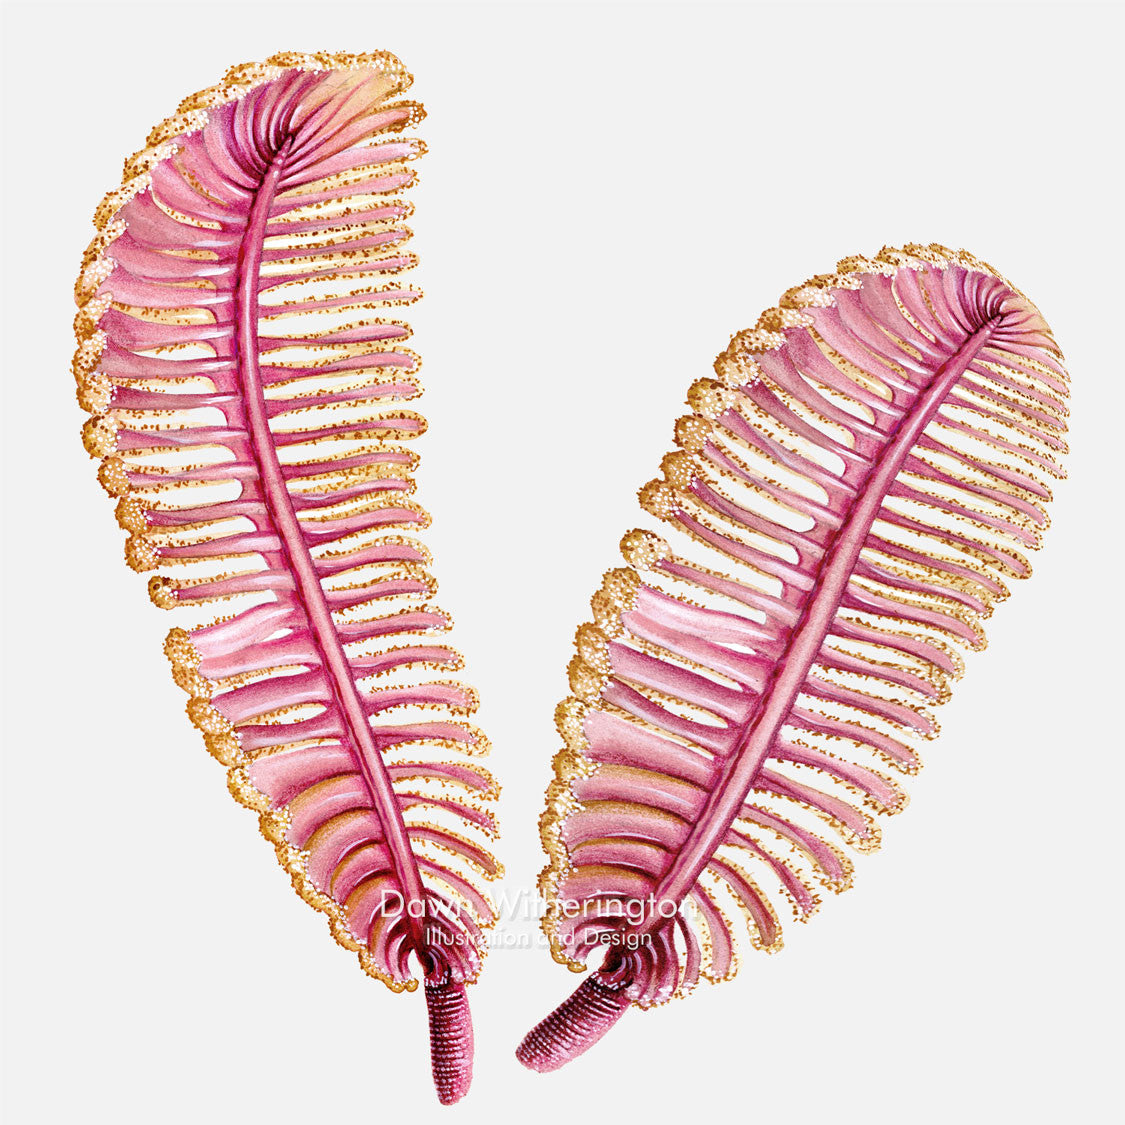 This beautiful illustration of sea pens is accurate in detail.